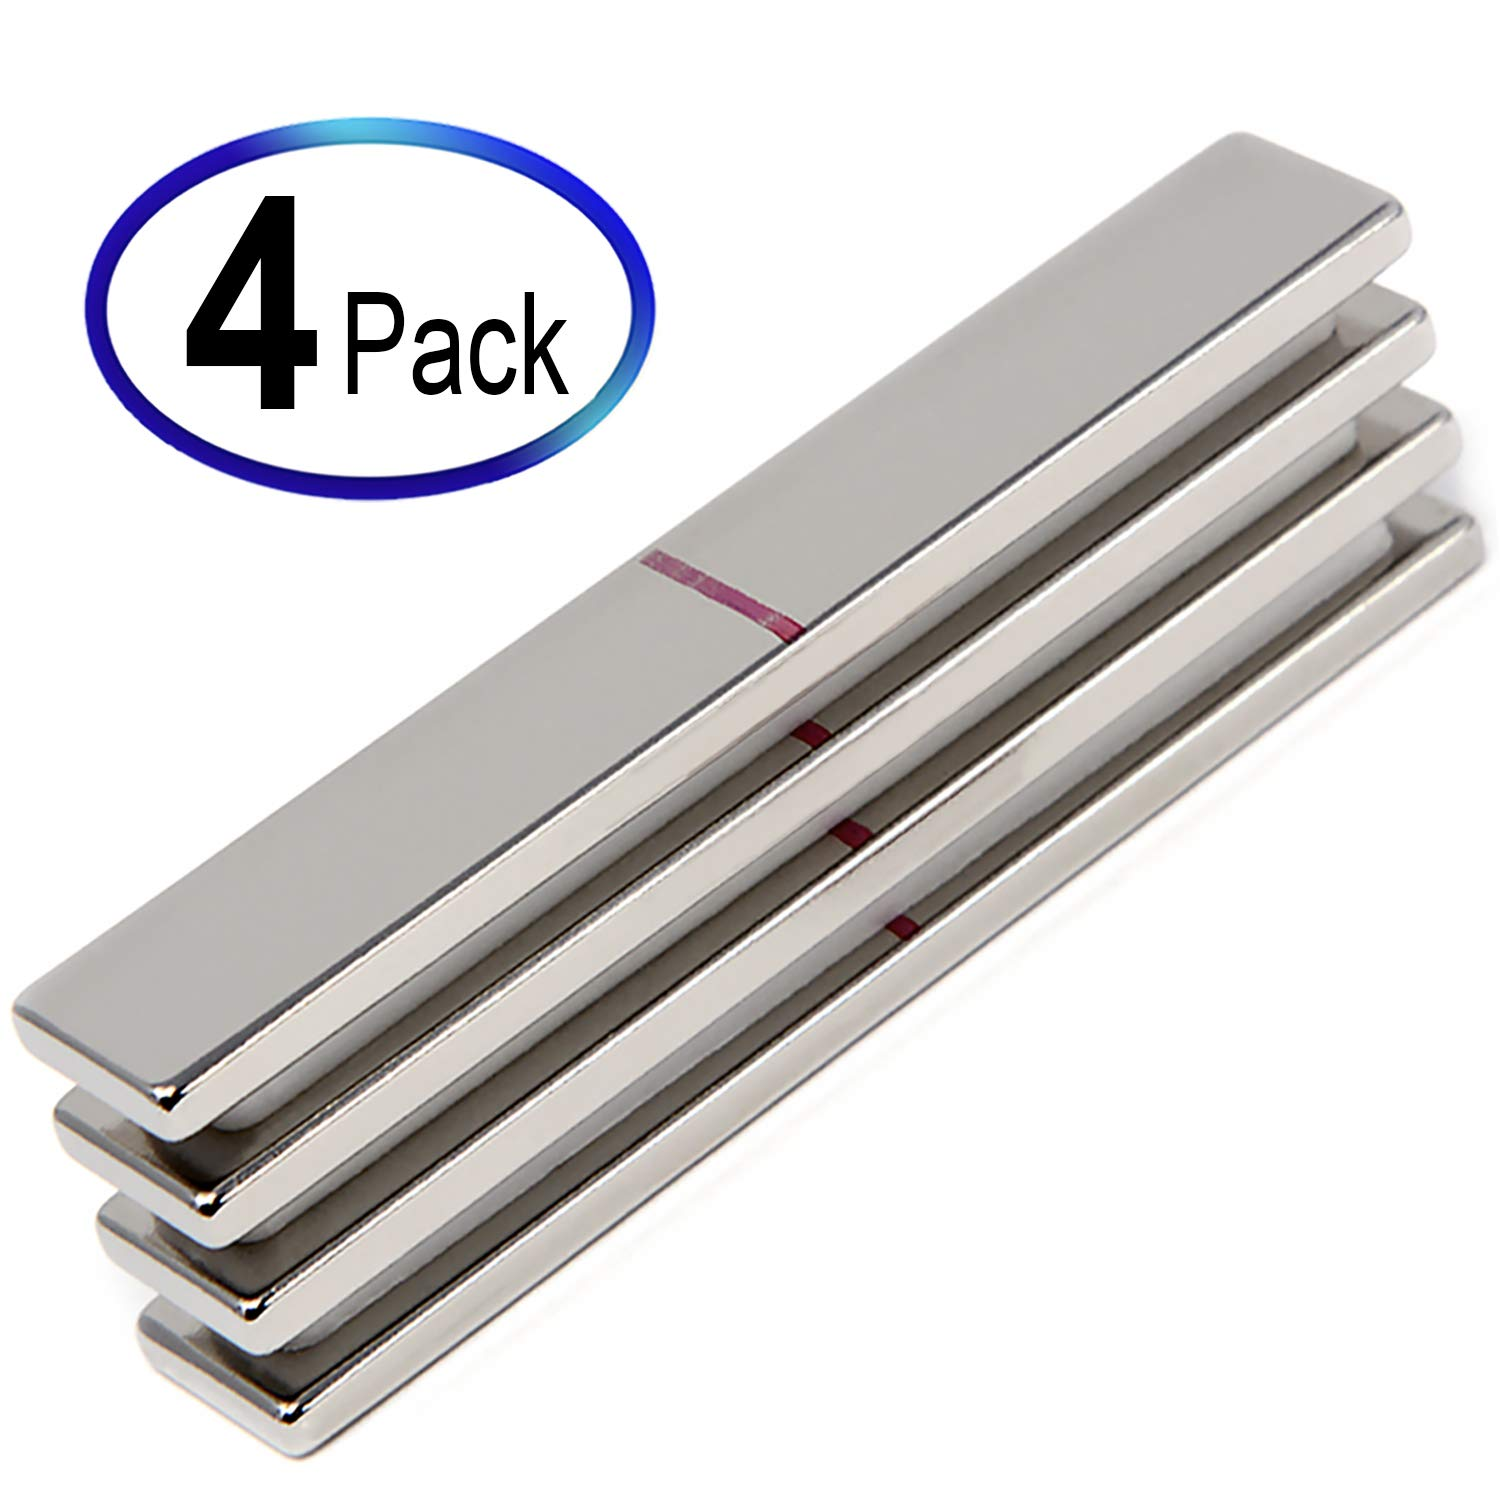 4 Pieces of CMS Magnetics Super Strong Neodymium Rare Earth Magnet 3' x 1/2' x 1/8' Grade N45. For DIY Stamping Using Creative Corners from Misti Inc. NB032-45N-4